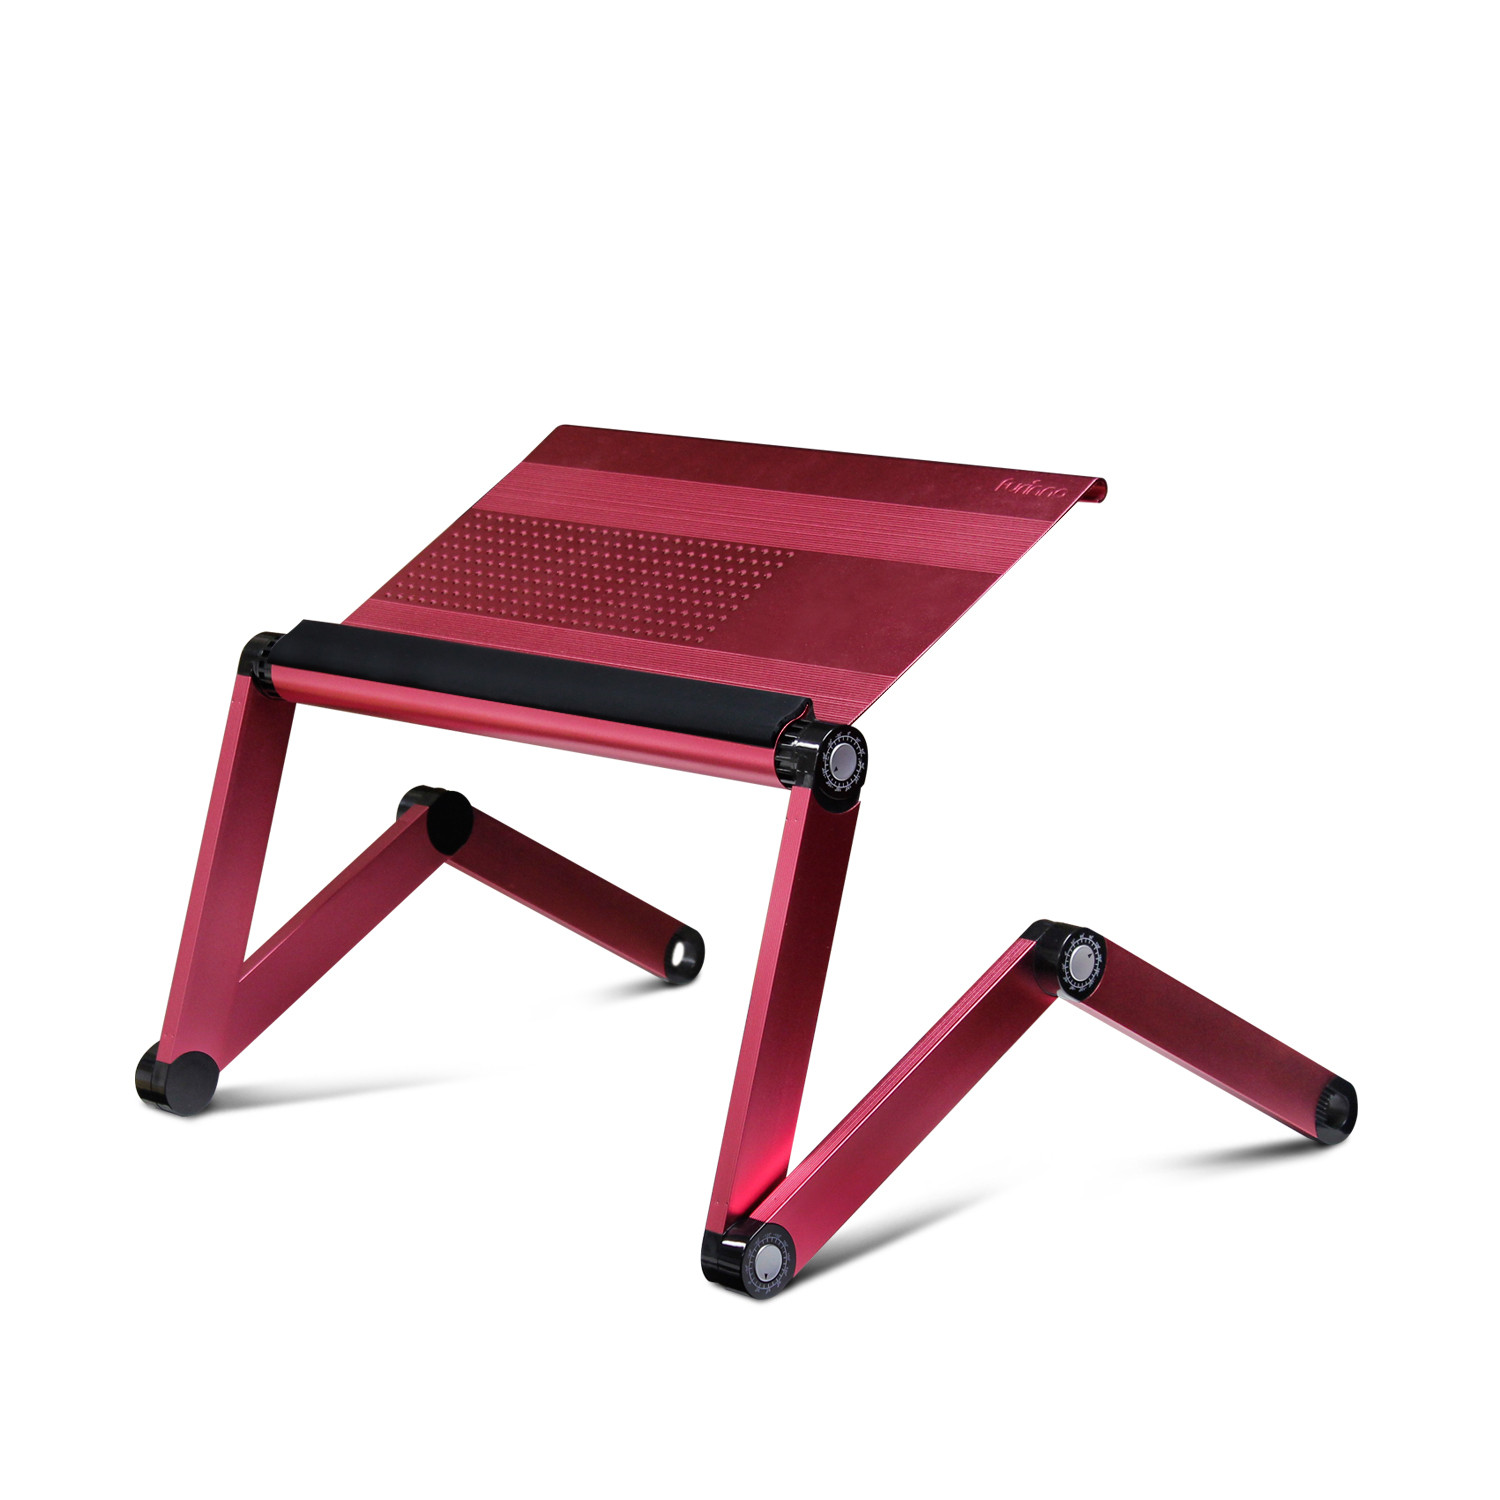 Adjustable laptop stand for bed